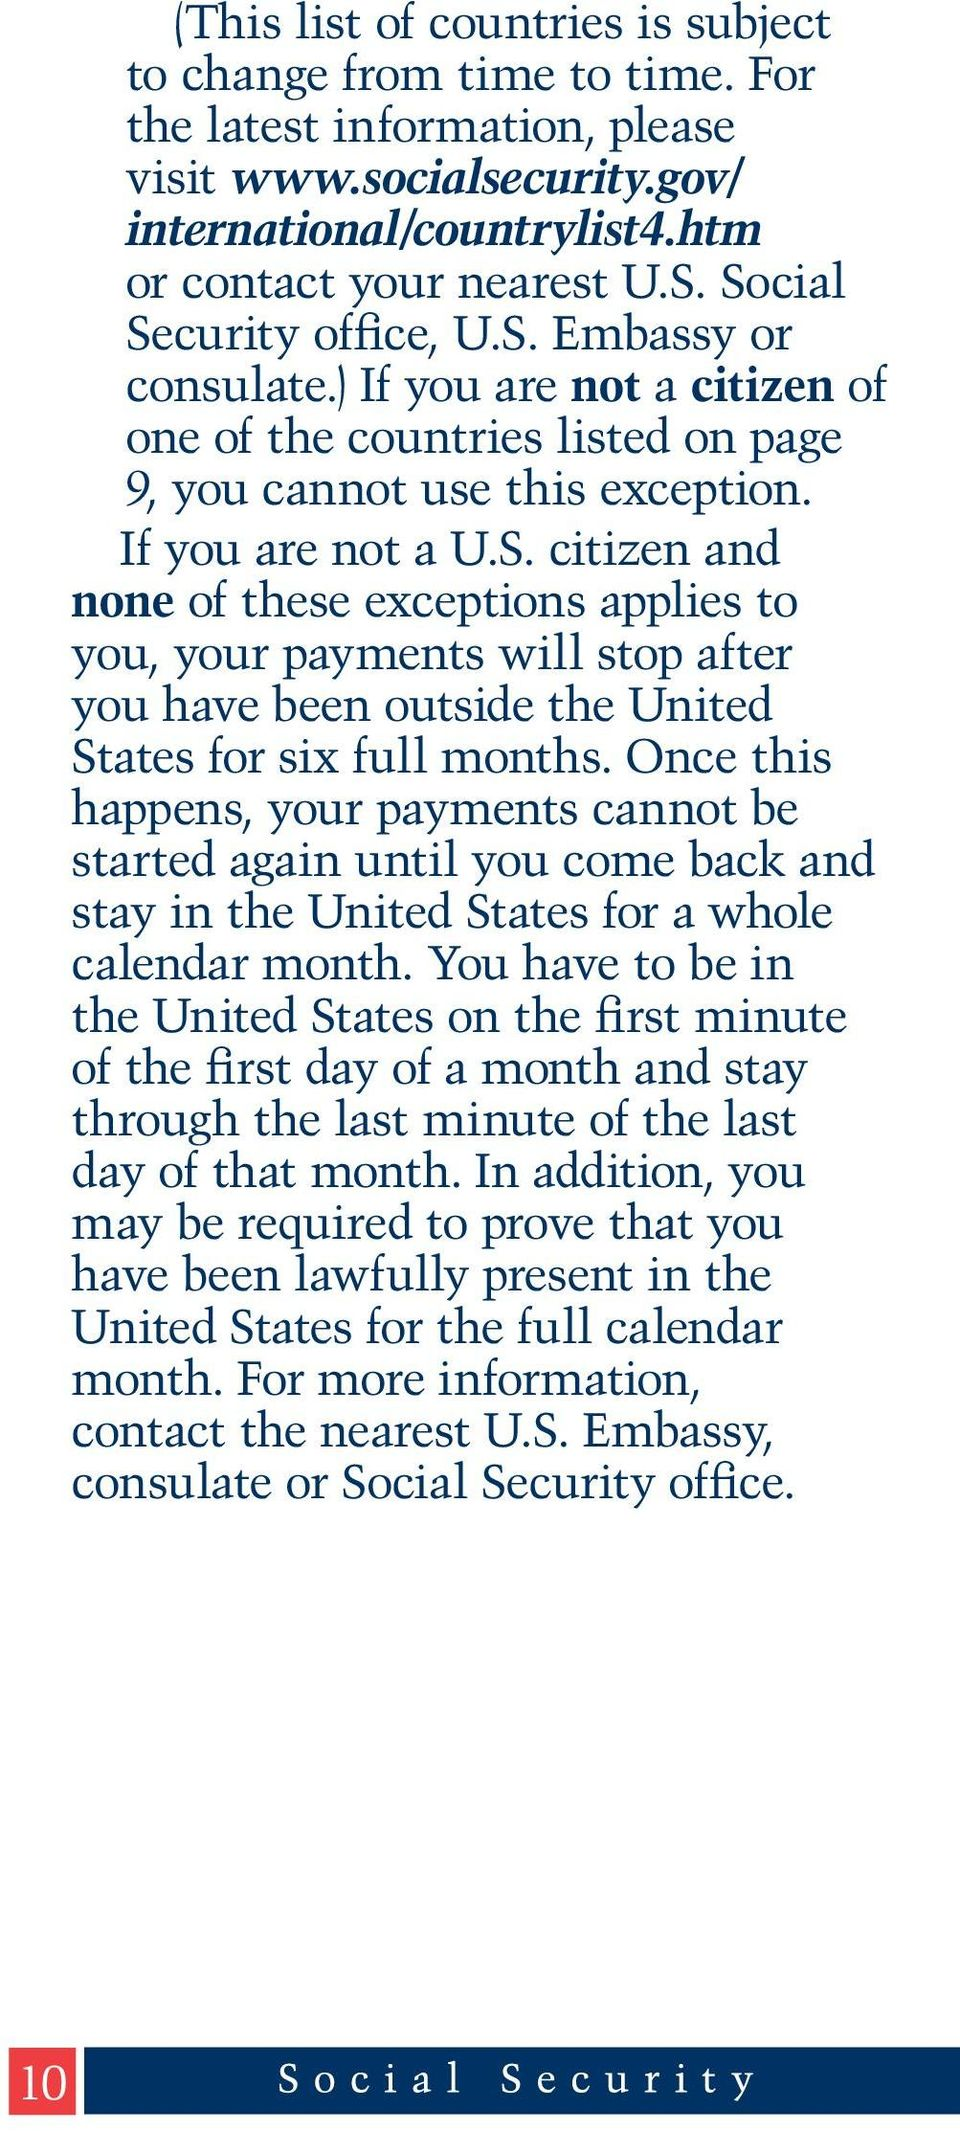 Once this happens, your payments cannot be started again until you come back and stay in the United States for a whole calendar month.